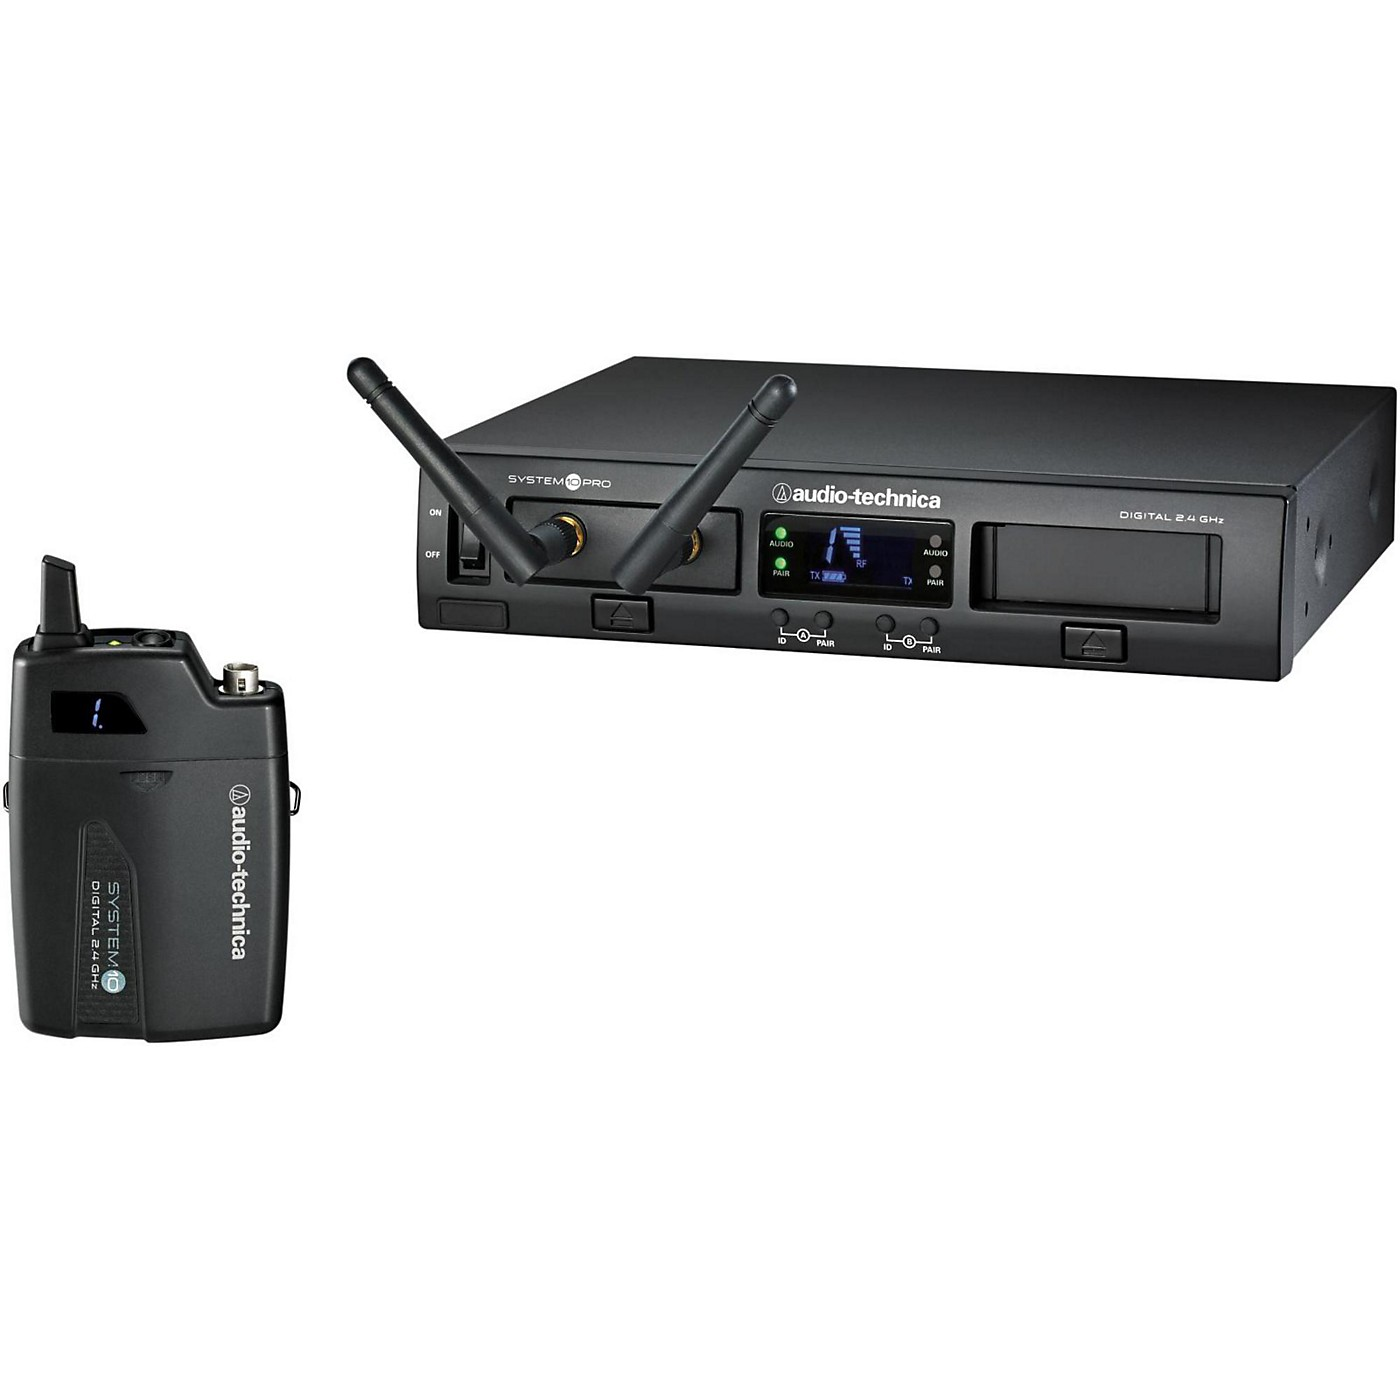 Audio-Technica System 10 Pro ATW-1301 Body-Pack System thumbnail